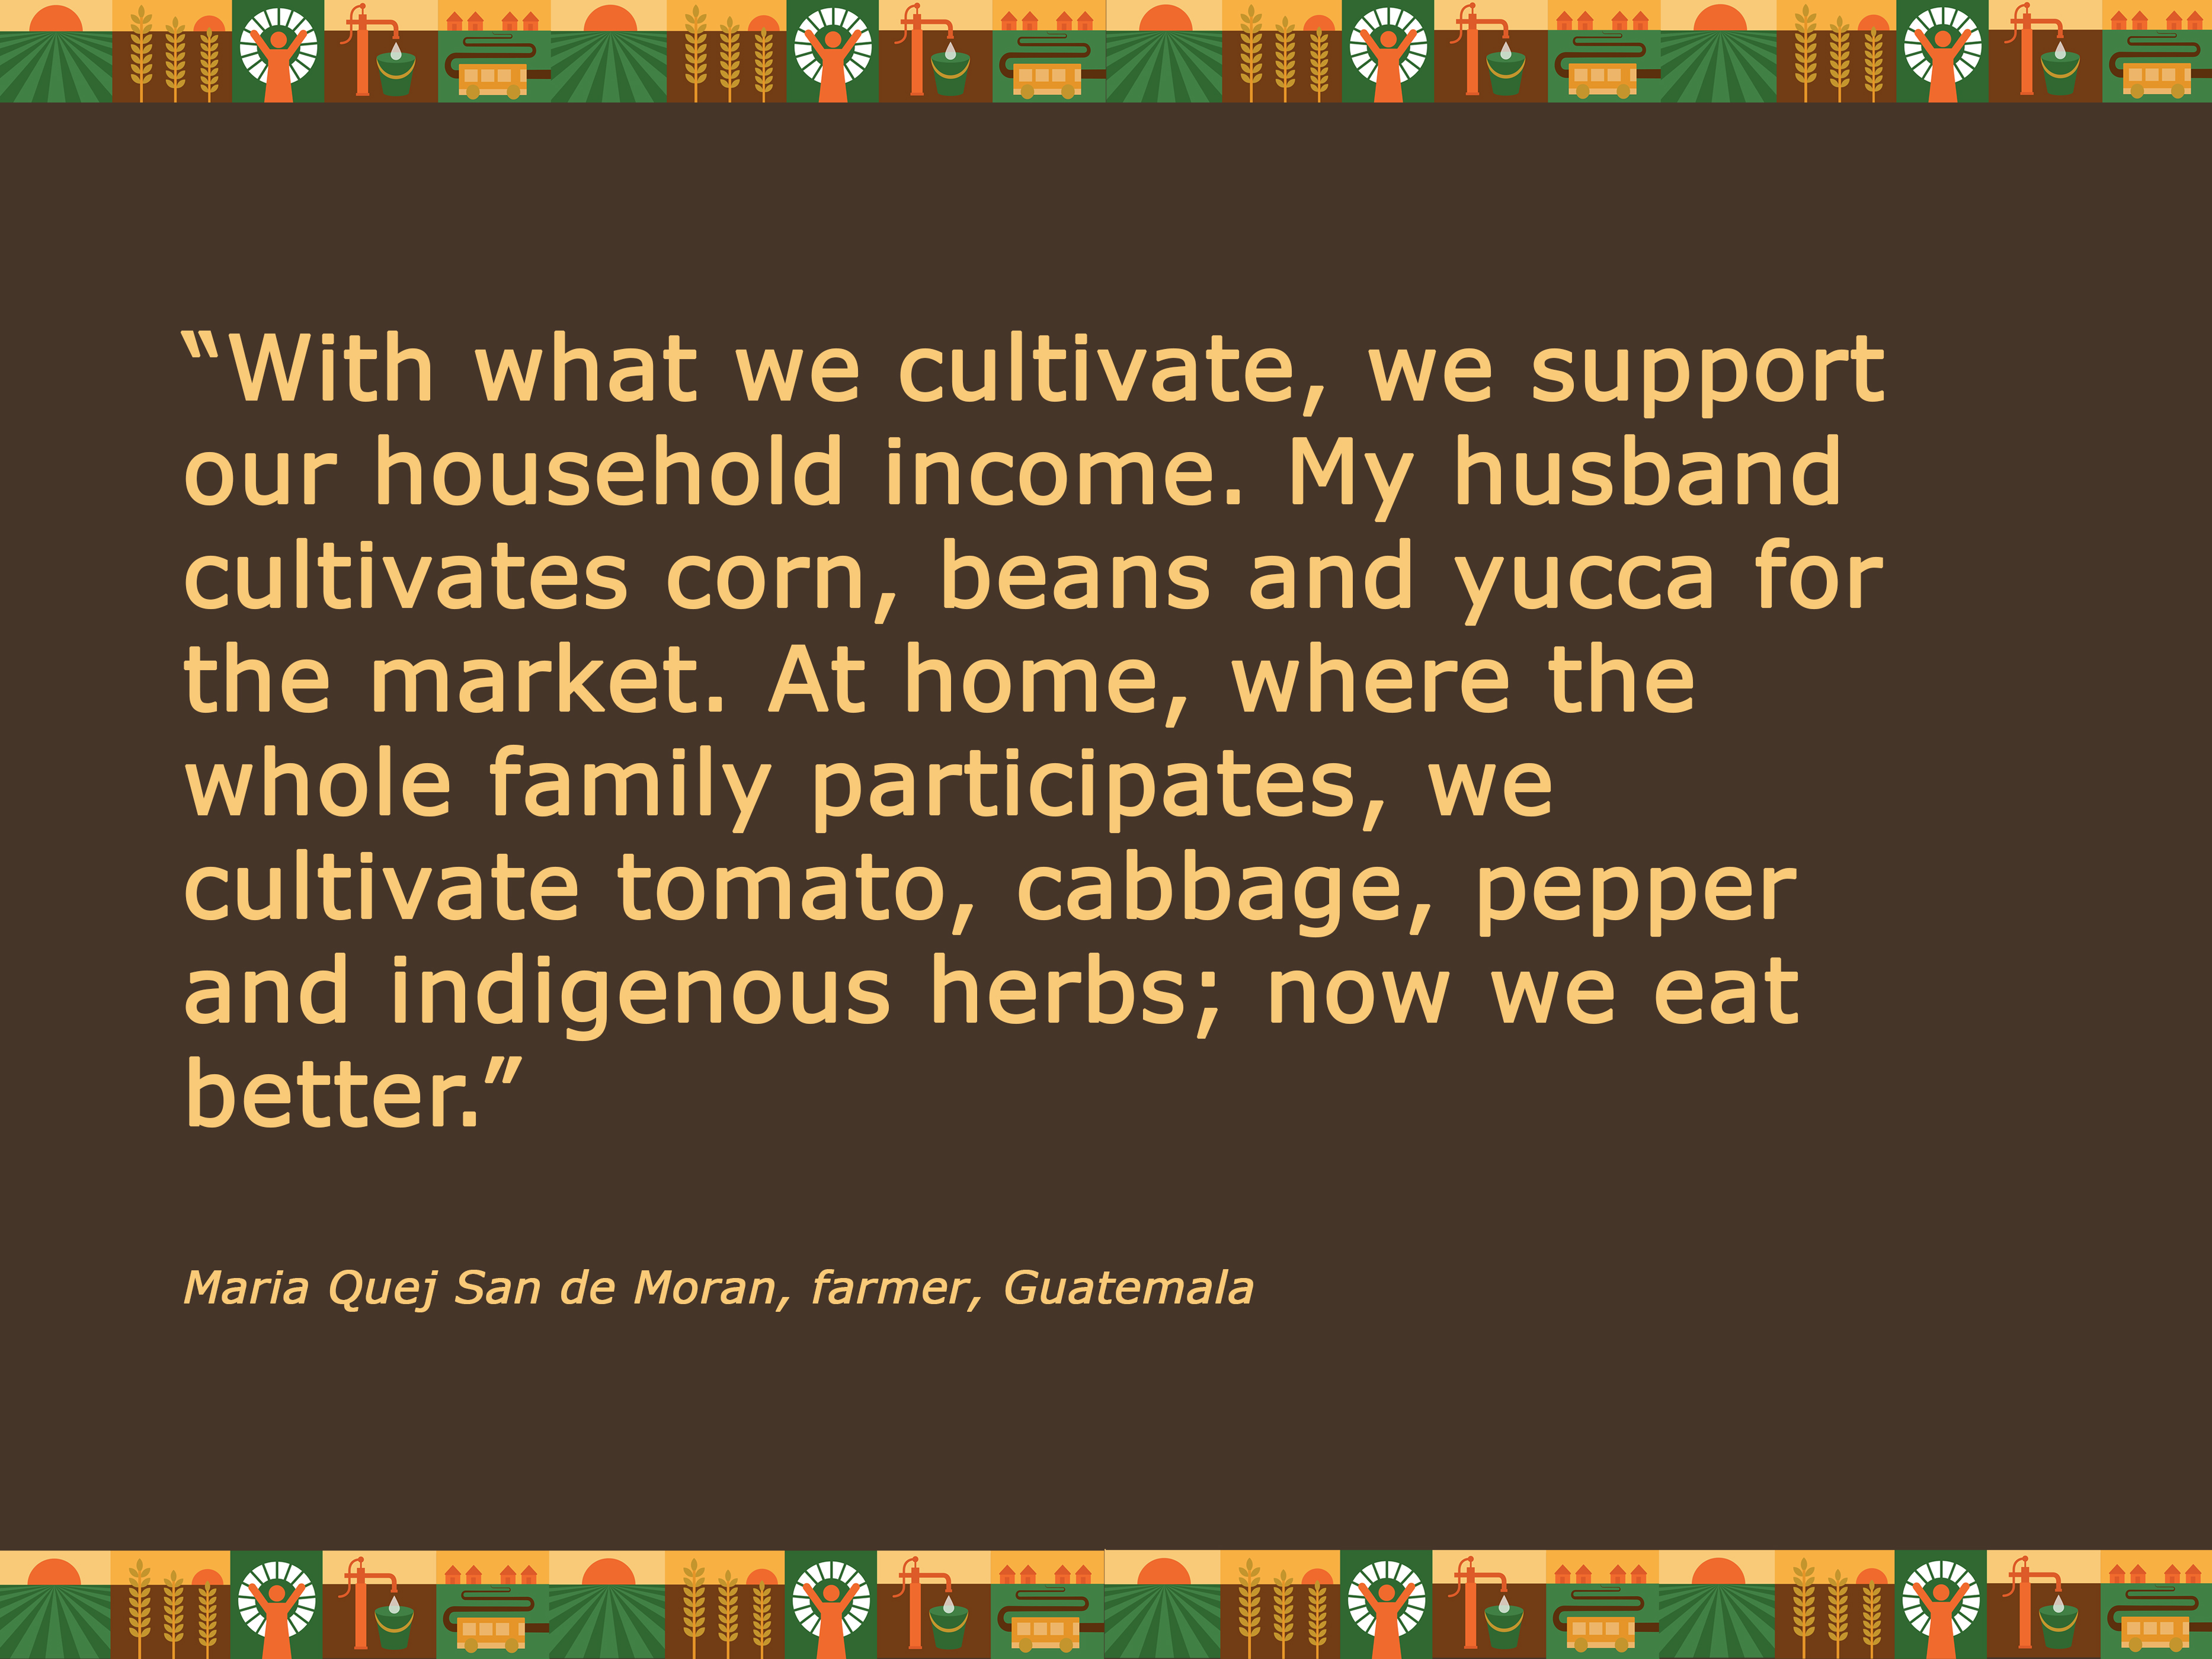 """Quot""""With what we cultivate, we support our household income. My husband cultivates corn, beans and yucca for the market. At home, where the whole family participates, we cultivate tomato, cabbage, pepper and indigenous herbs; now we eat better."""" Maria Qu"""